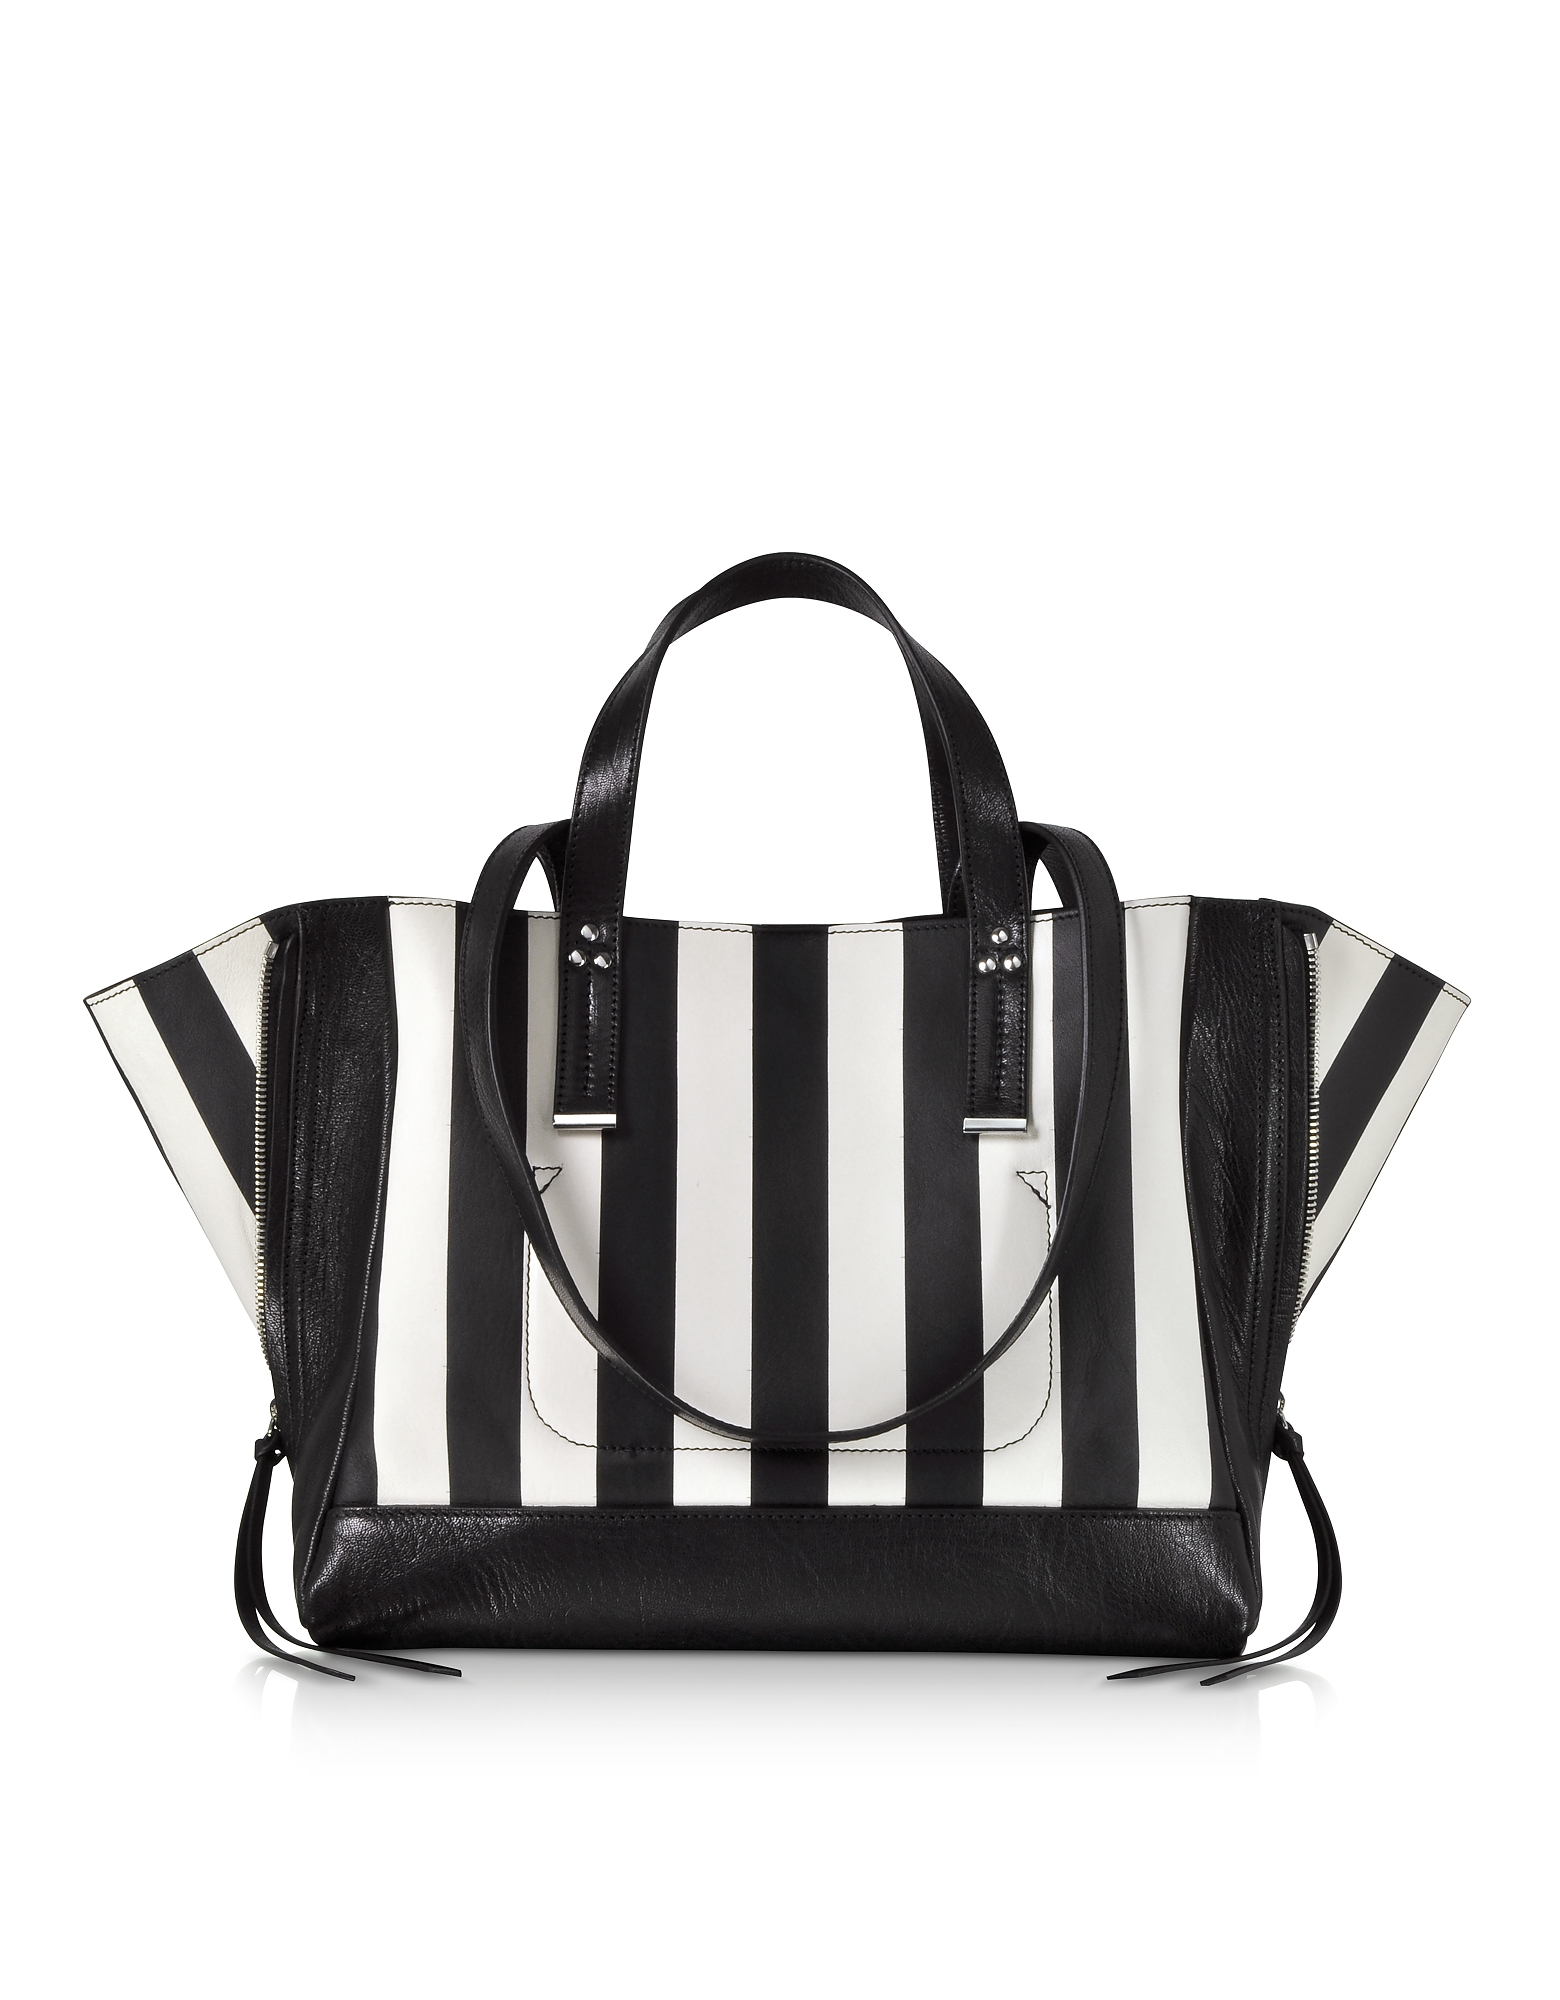 Georges M Black and White Stripes Leather Tote Bag